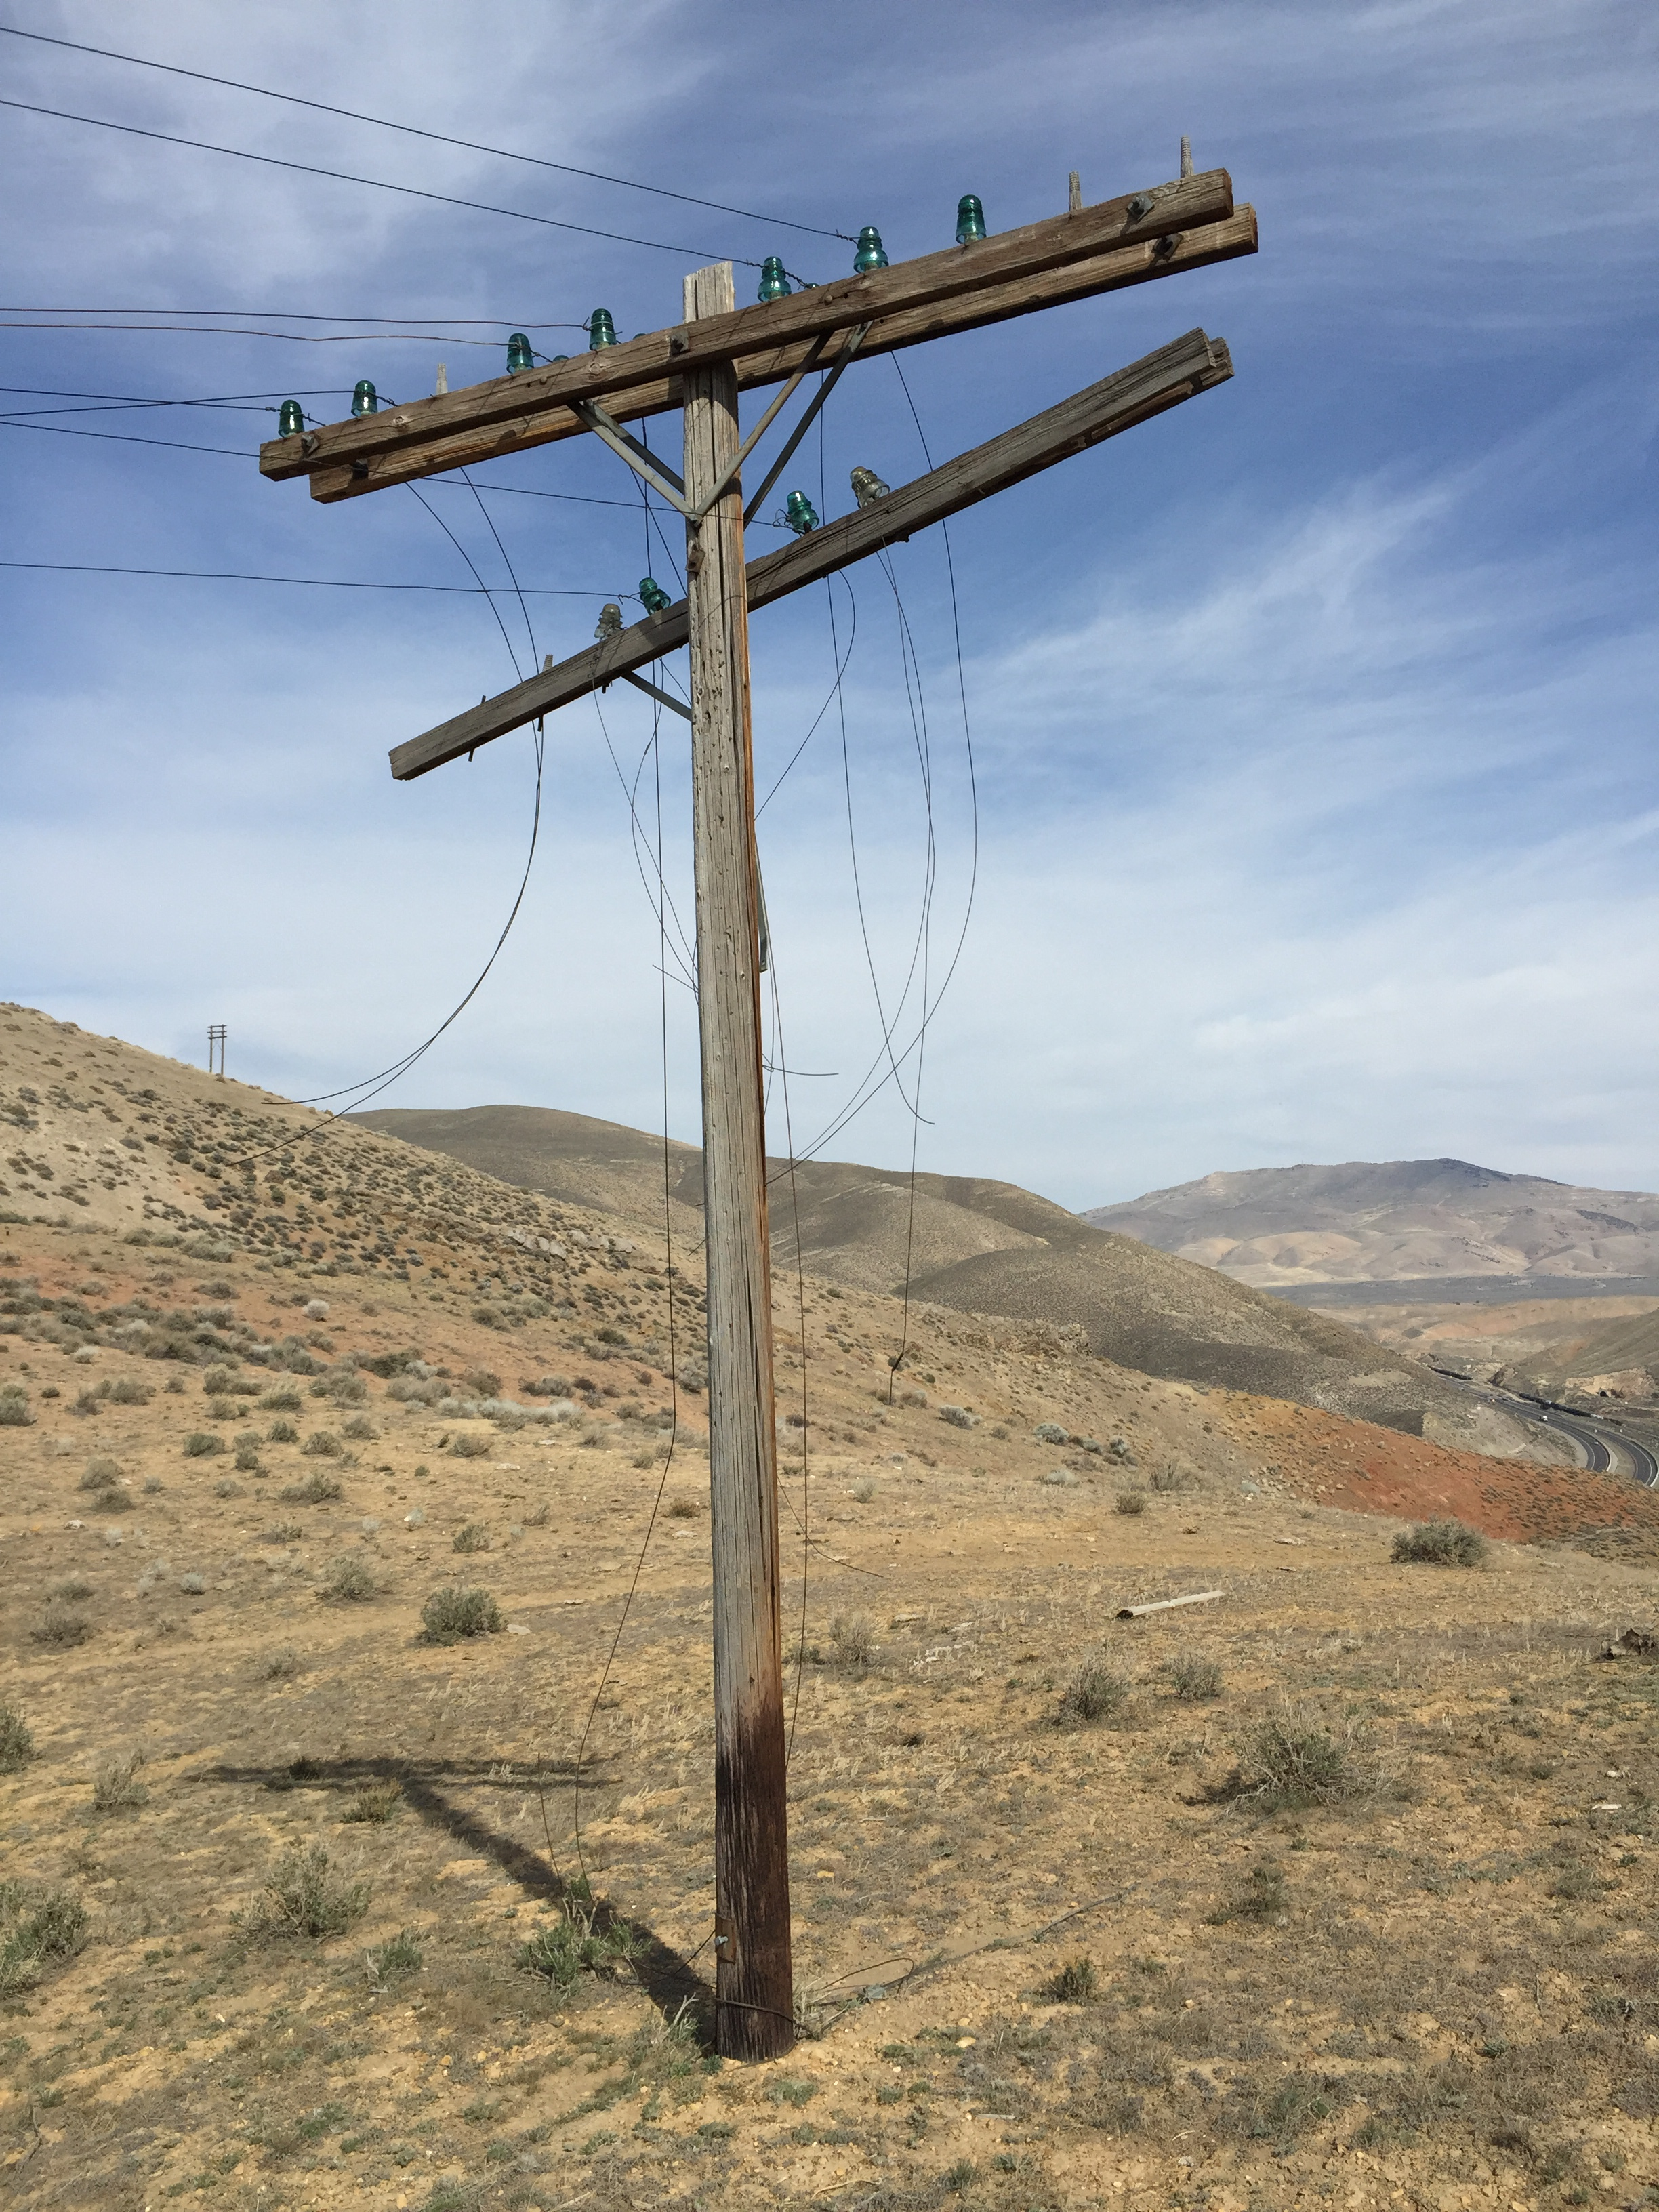 File:2015-04-19 16 03 49 Old telephone pole with broken wires ...